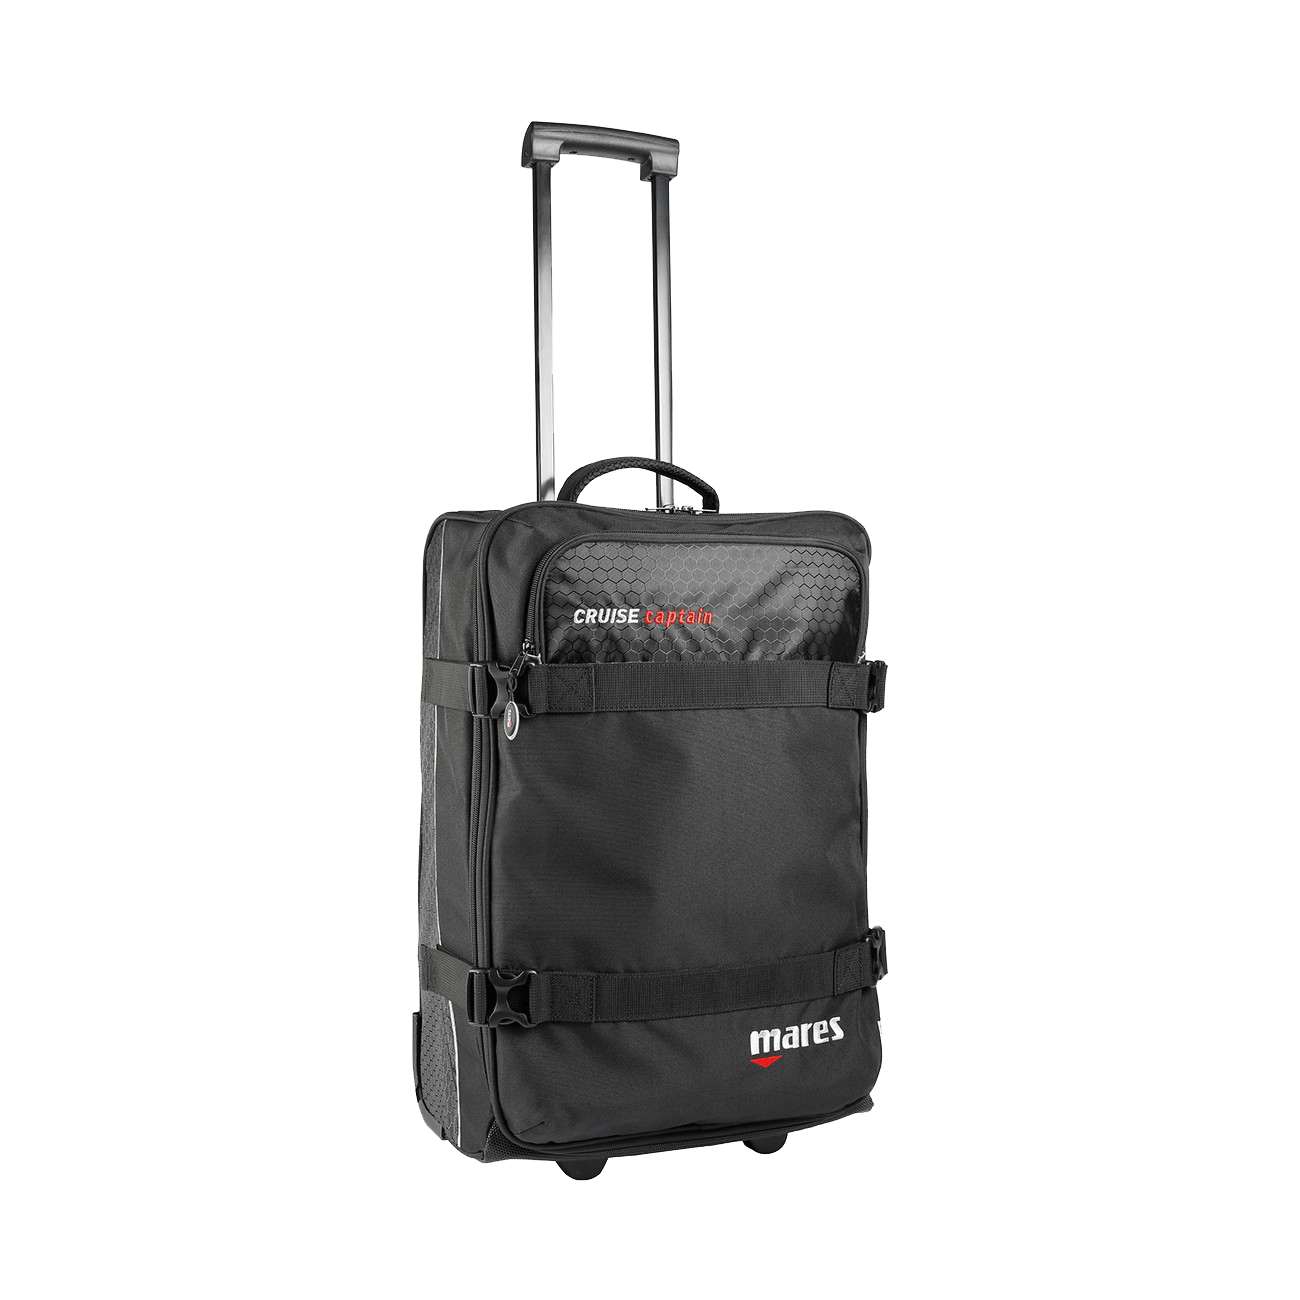 Mares Cruise Captain Roller Bag | Mares Bags | Mares Singapore